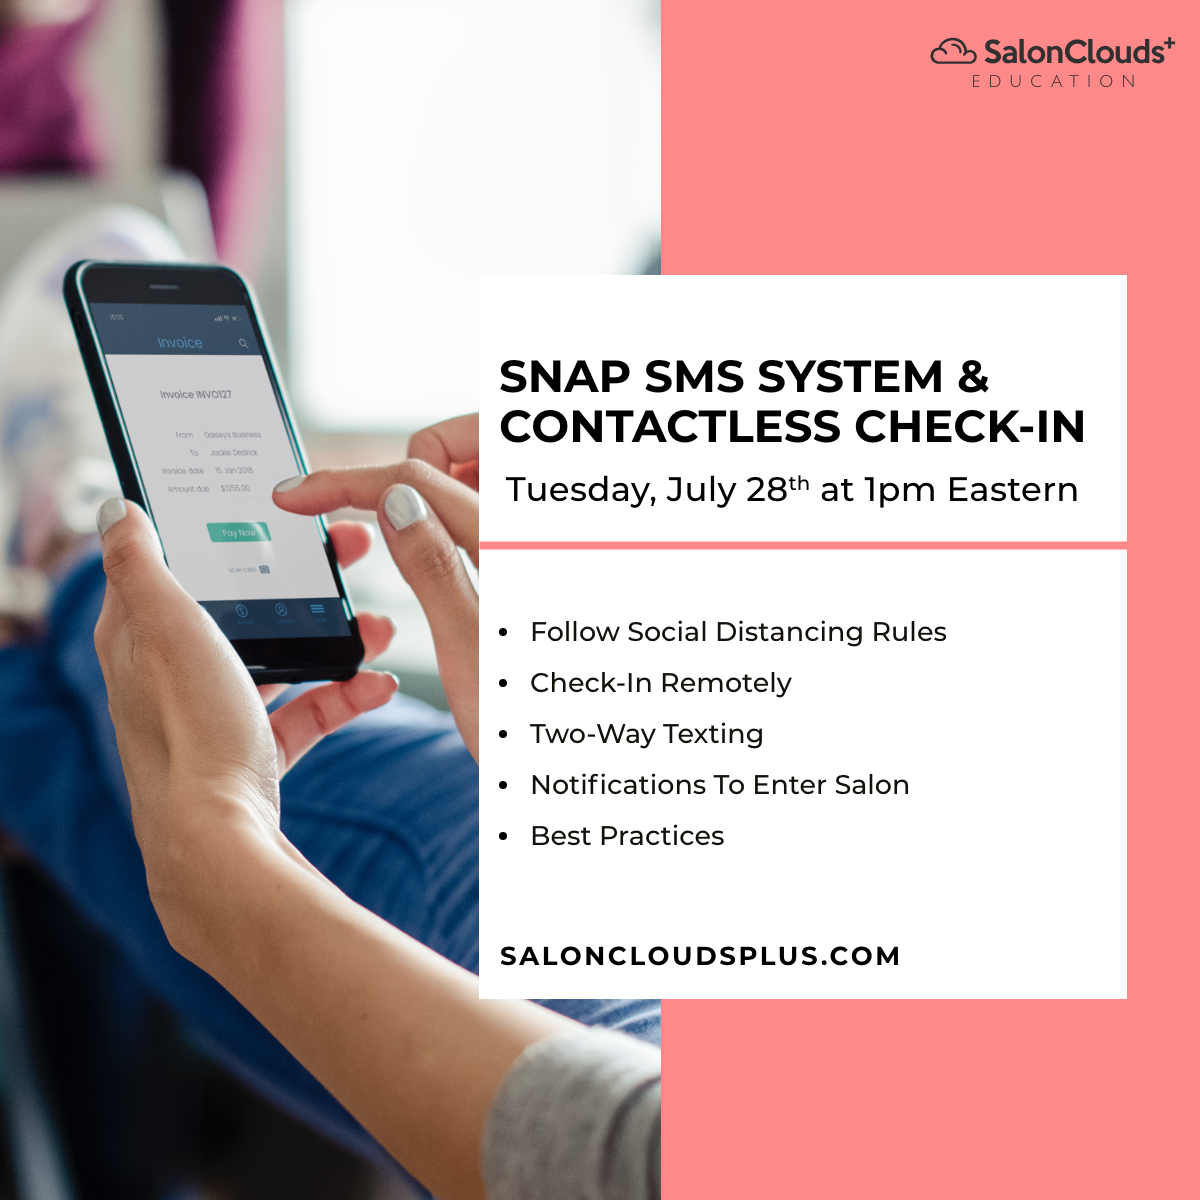 Contactless Check-in & Snap SMS Texting System Training Webinar Recording